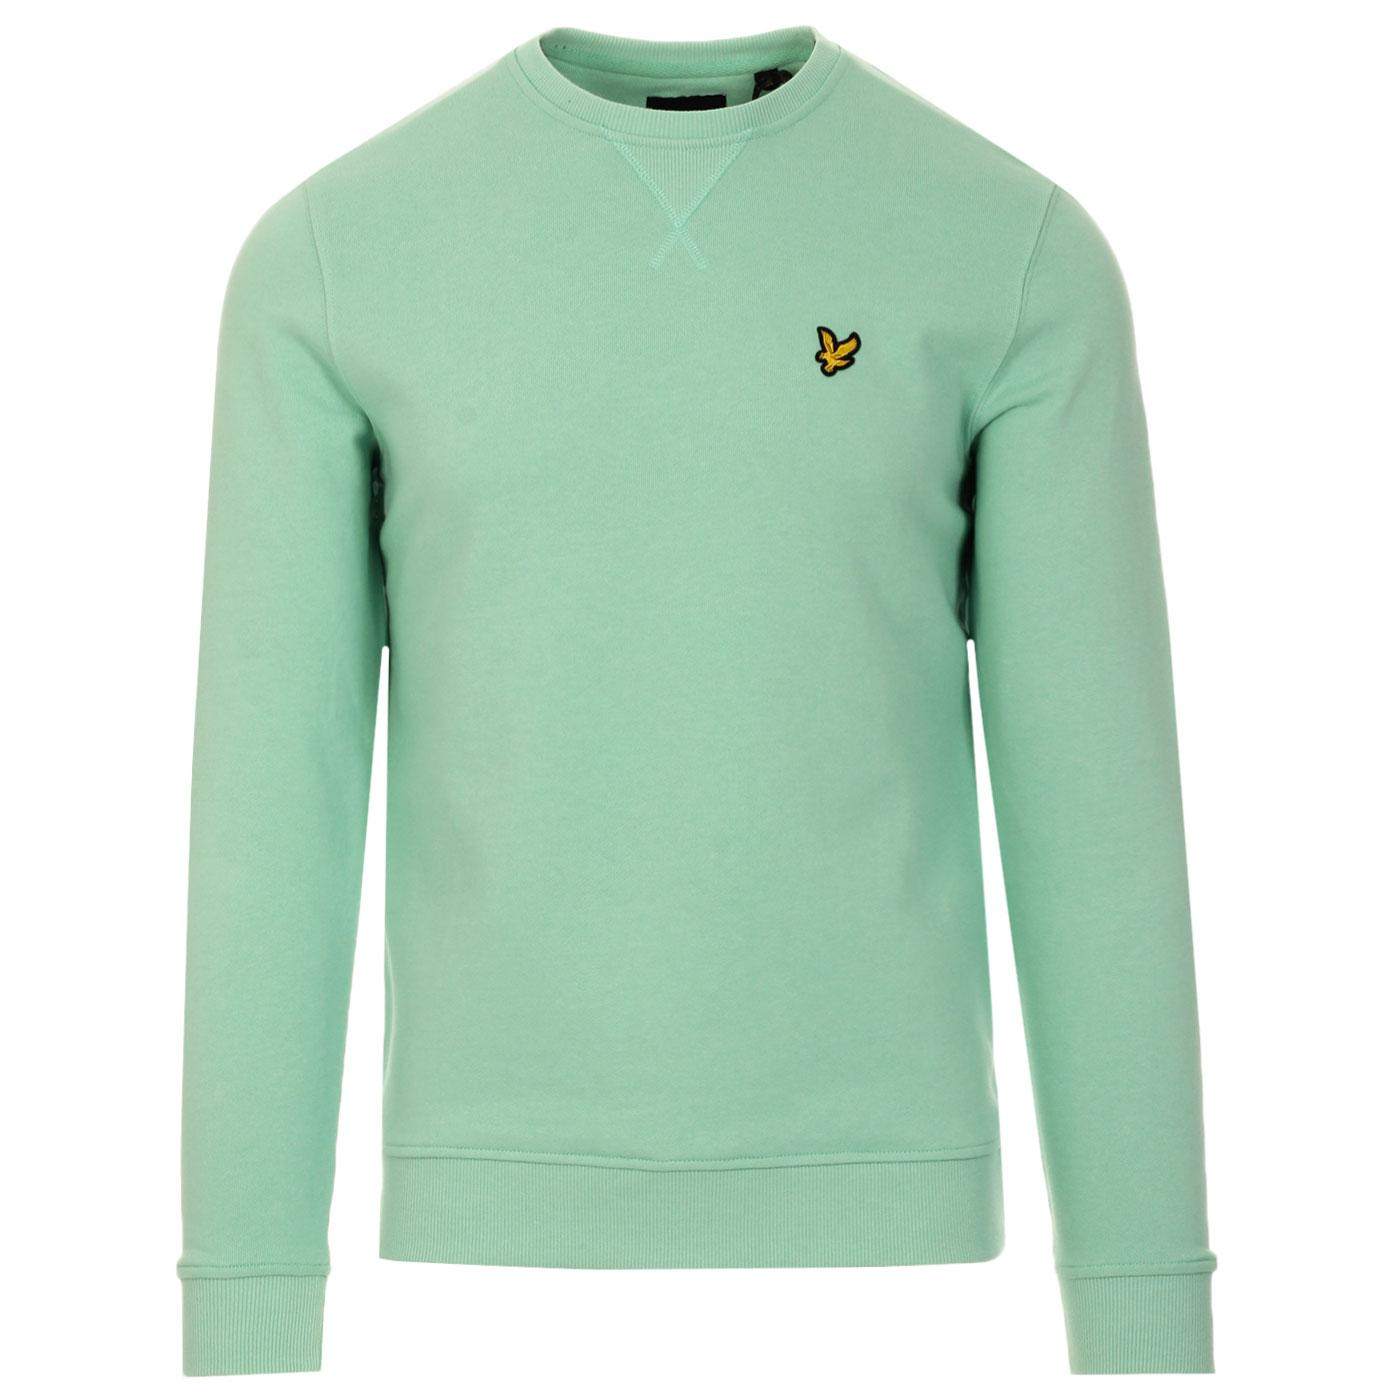 LYLE & SCOTT Men's Retro Crew Neck Sweatshirt MINT